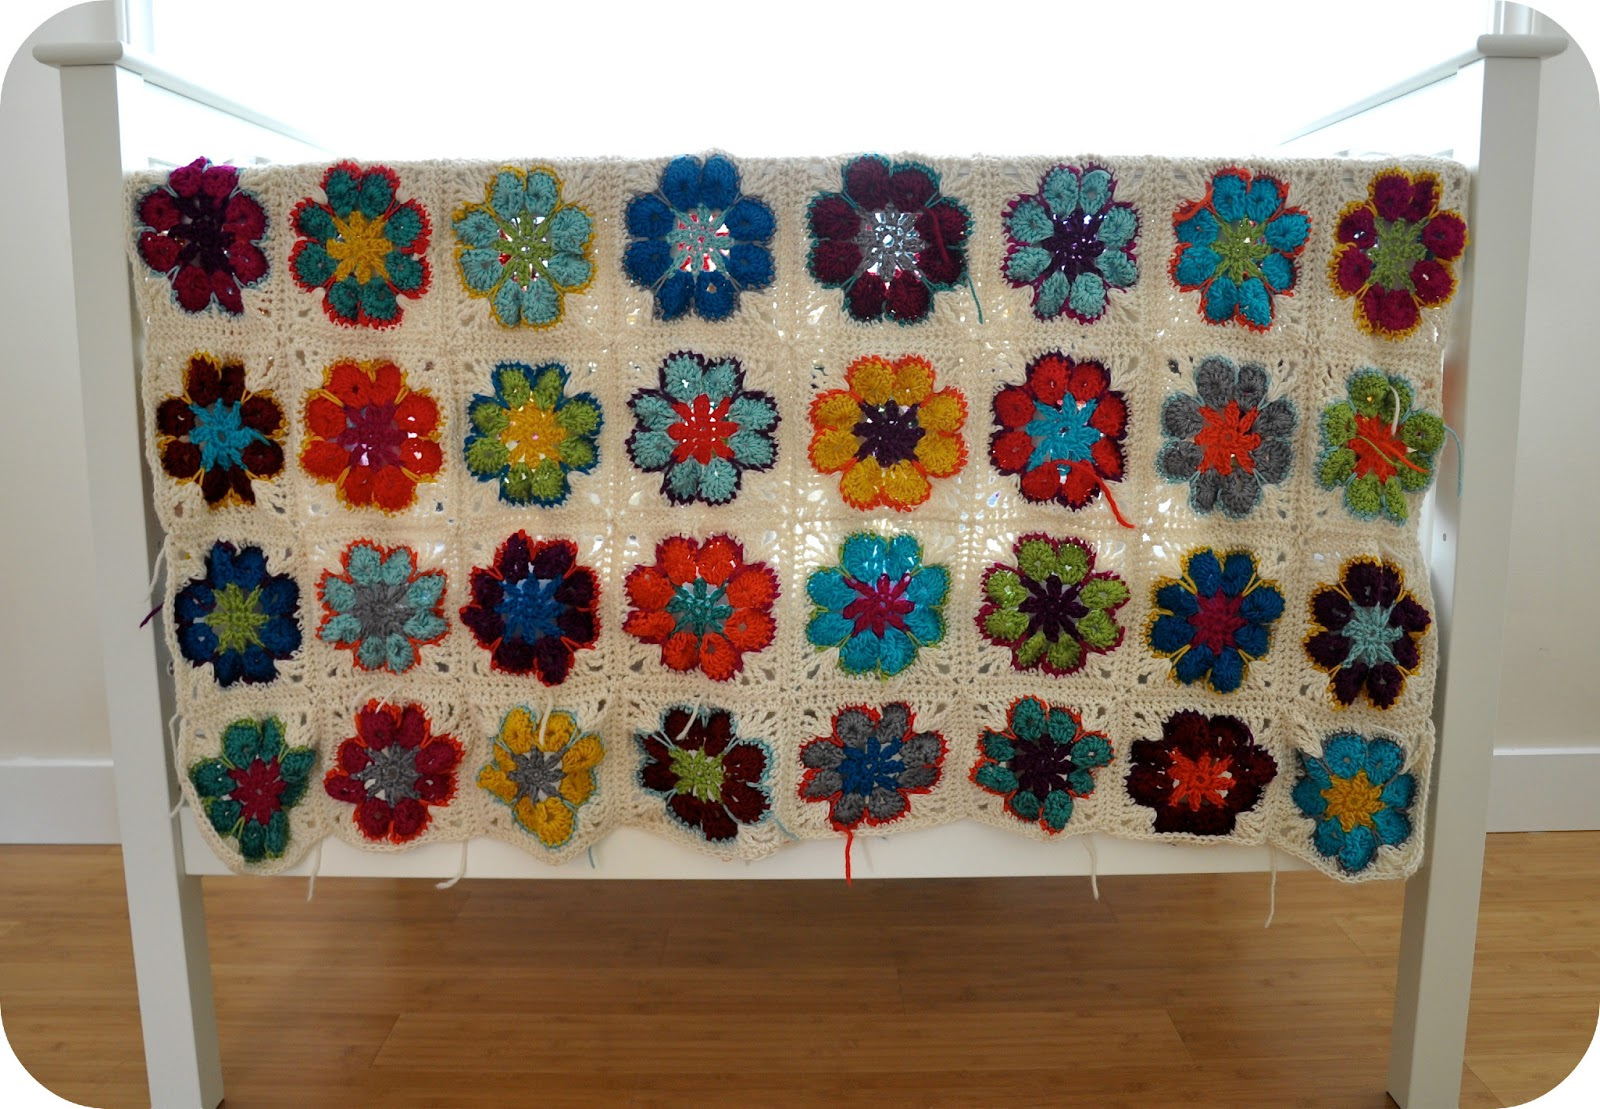 Crocheting Granny Square Blanket : If you want to make this crochet granny square blanket too,